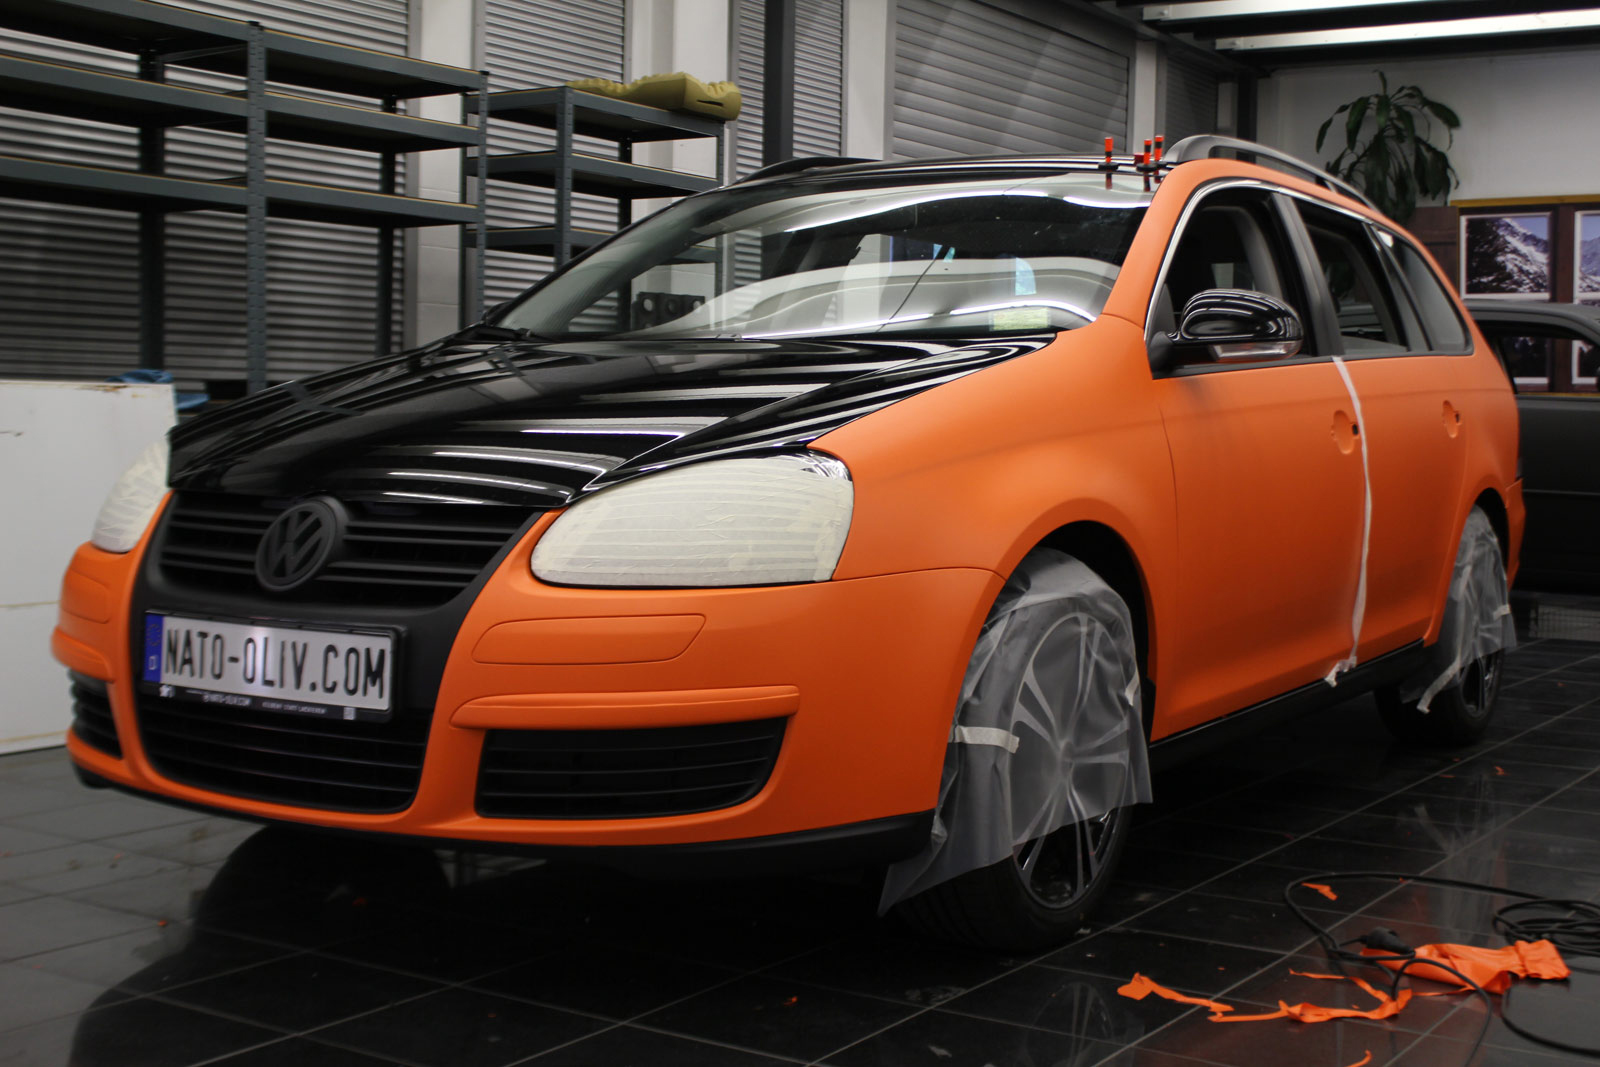 VW_Golf5_Variant_Folierung_Orange_Matt_05